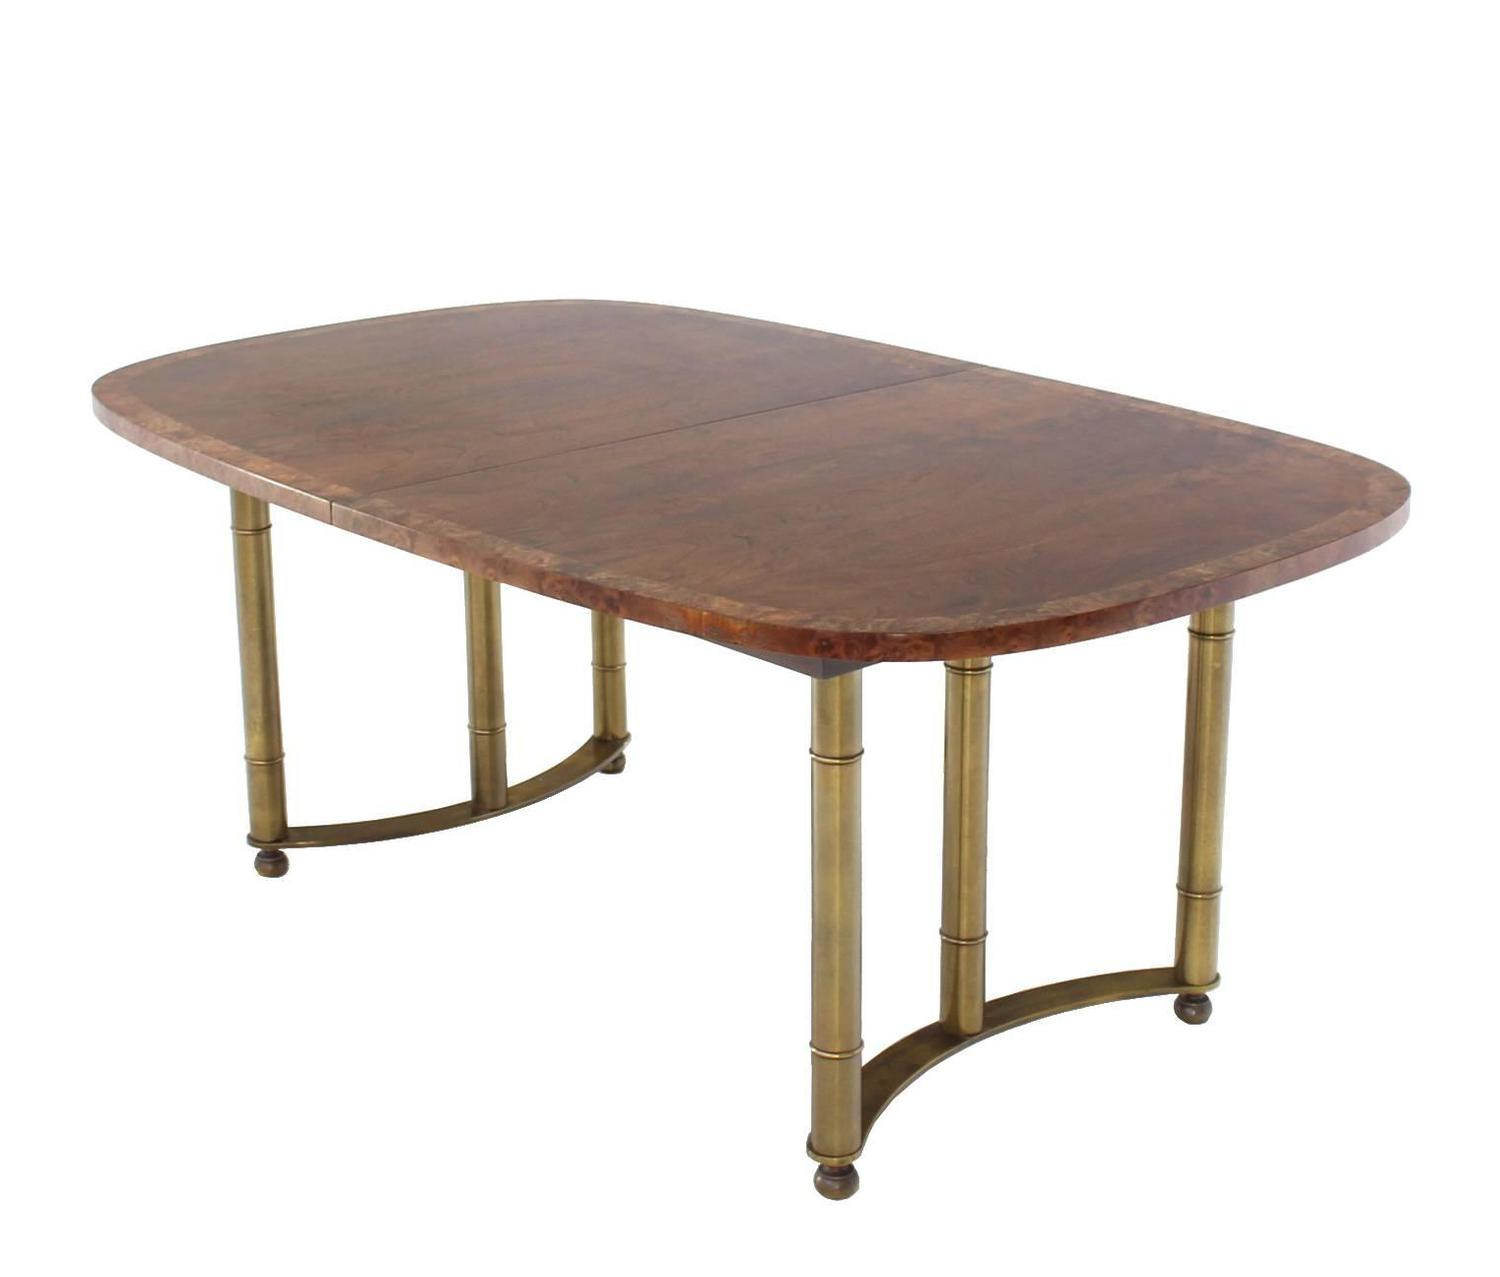 Mastercraft burl wood oval dining table with two leaves at for Dining room table 2 leaves